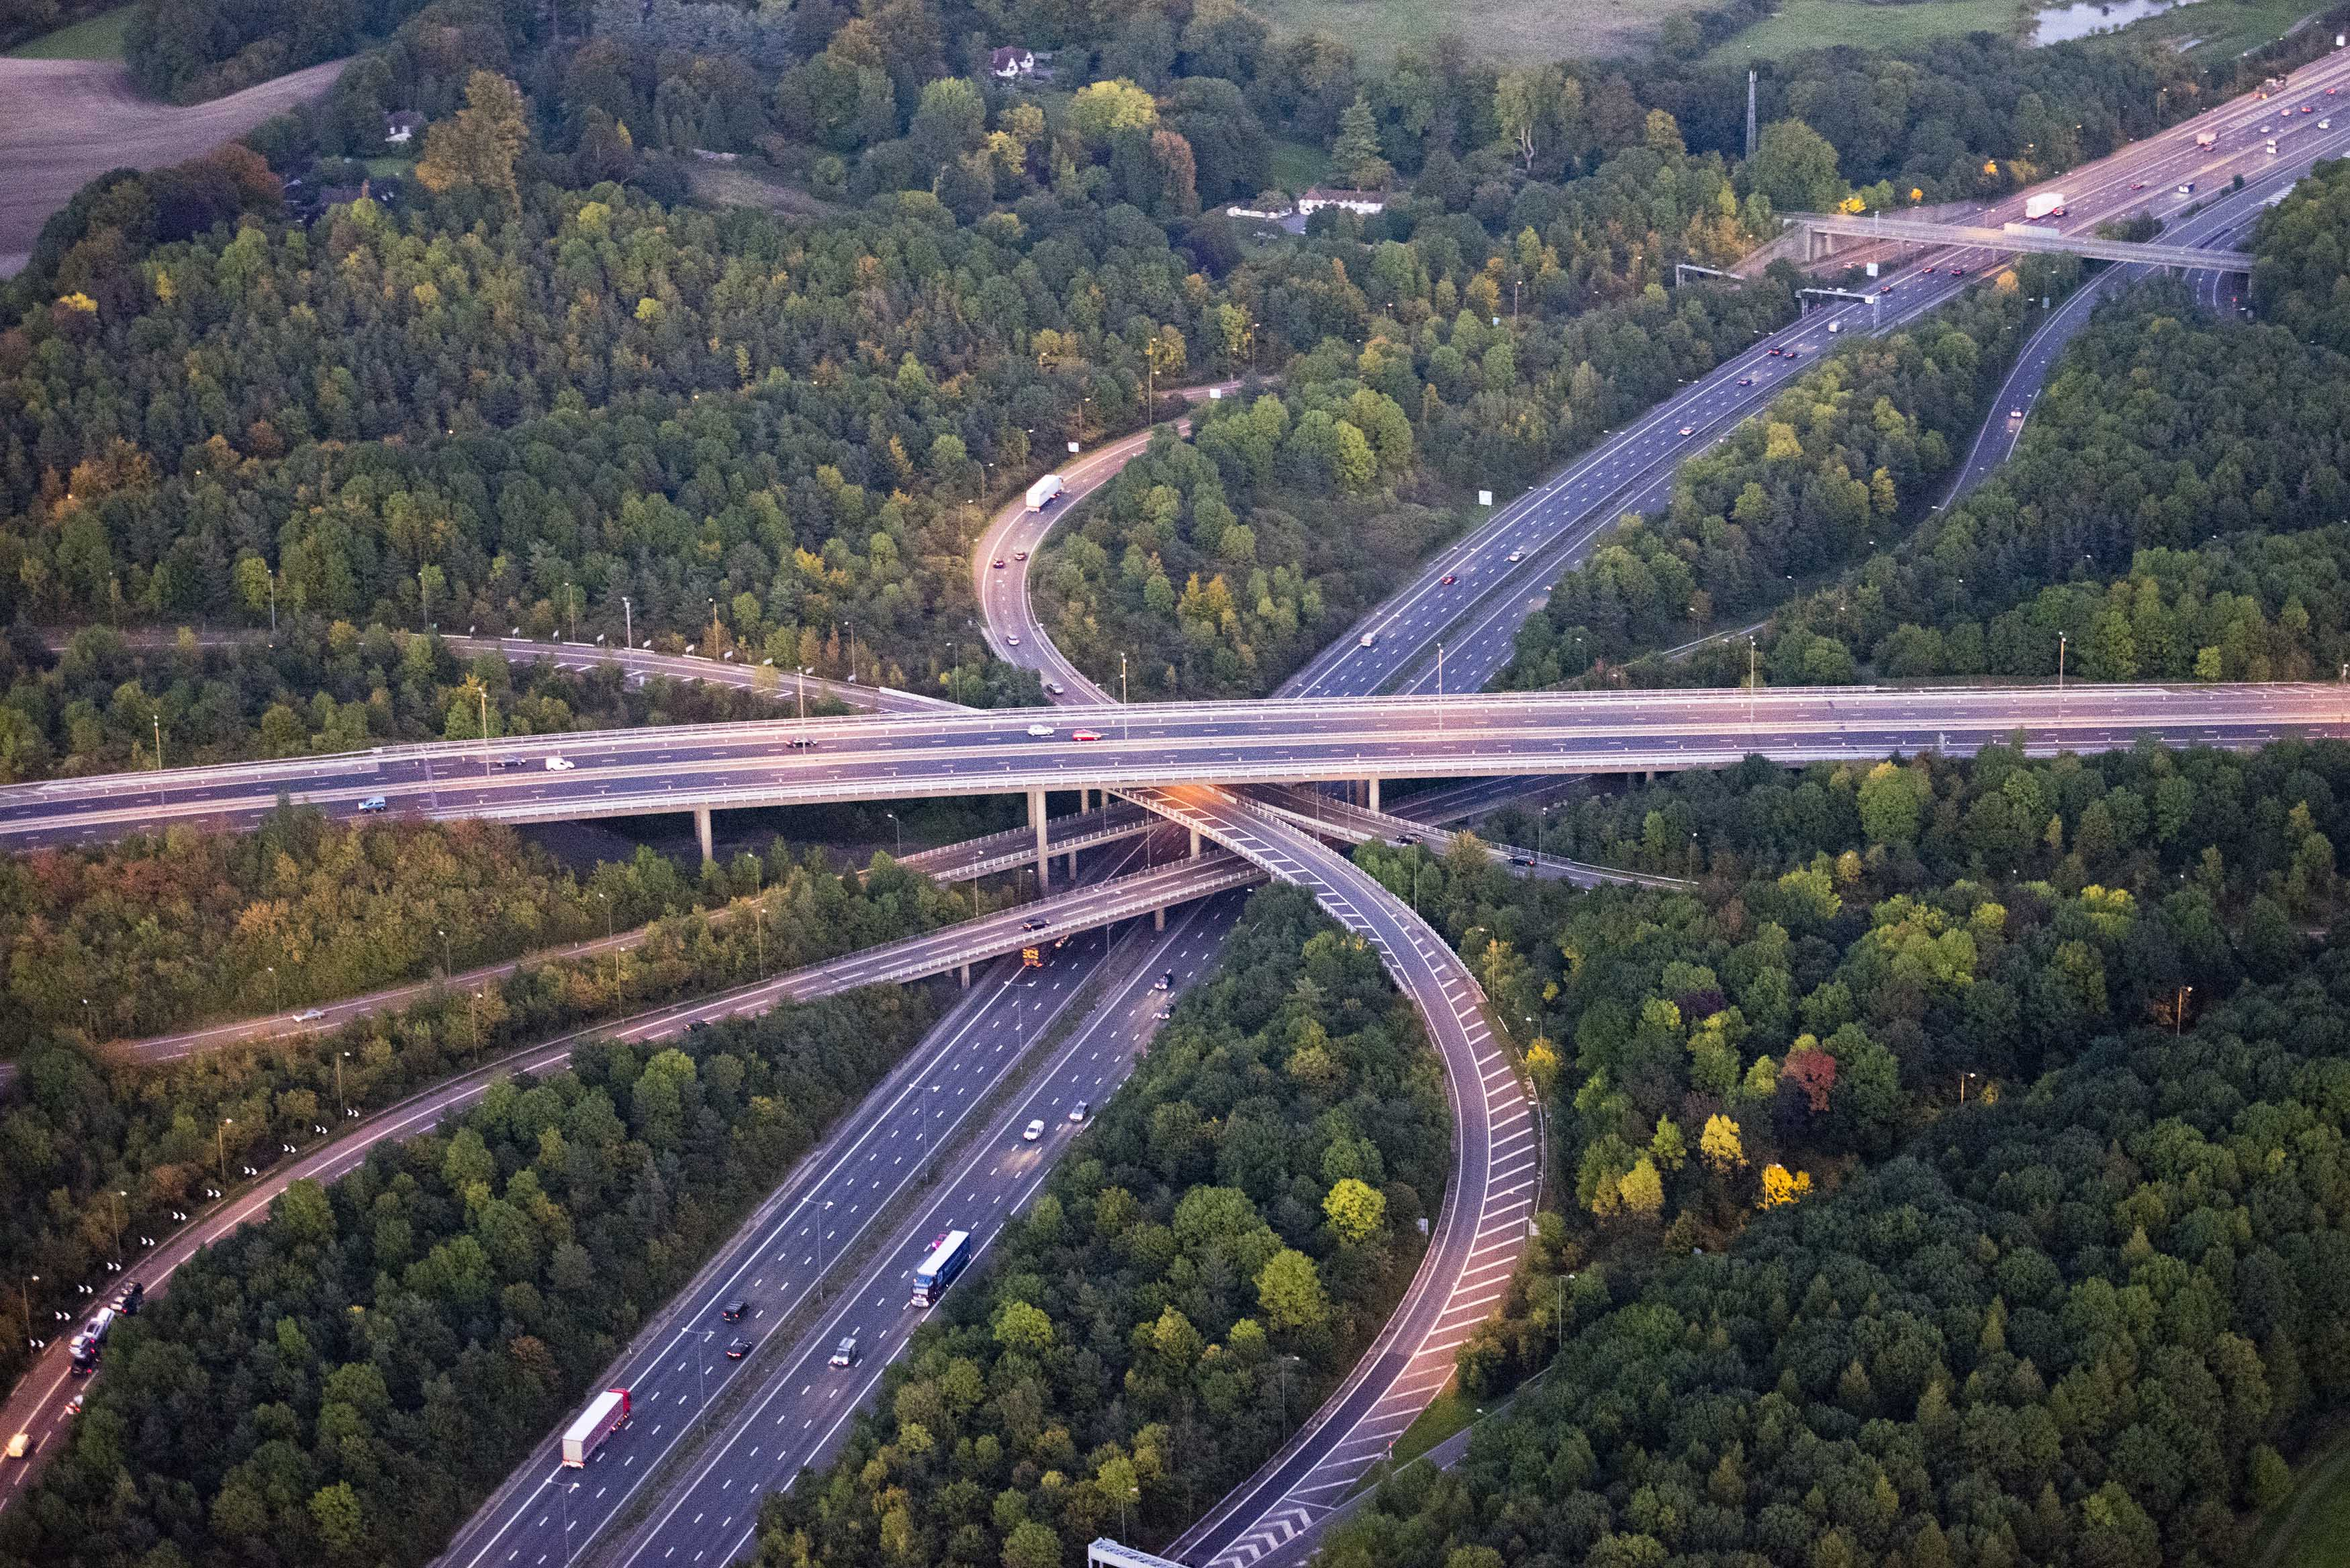 Zenzic: Connected highways and motorways